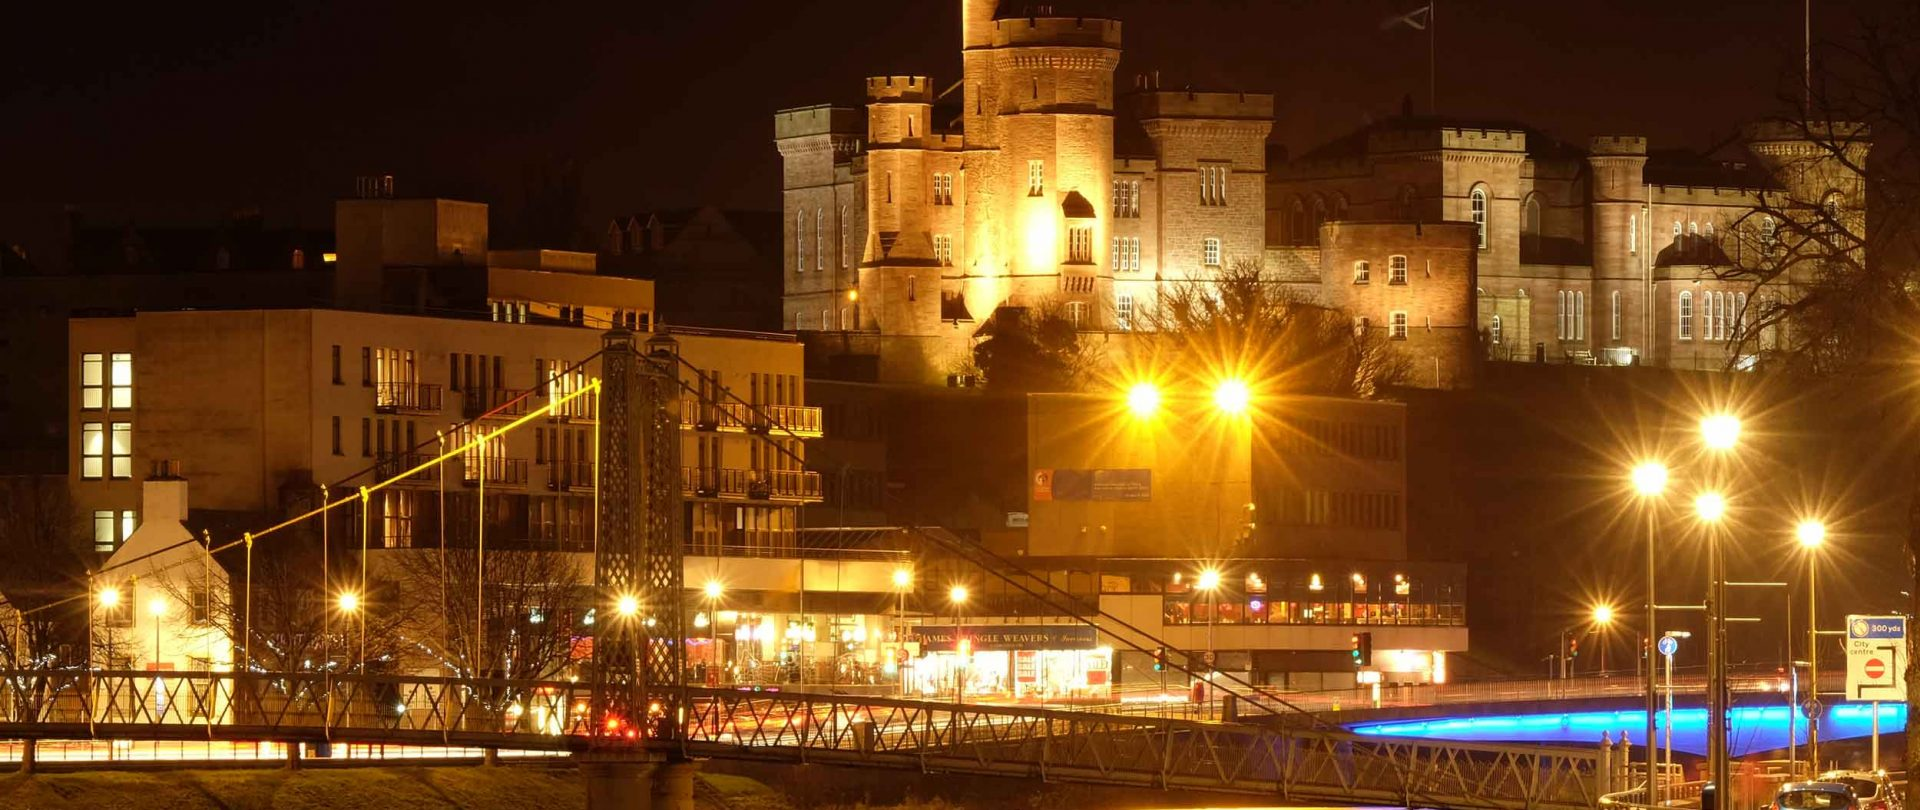 Inverness castle Inverness by night